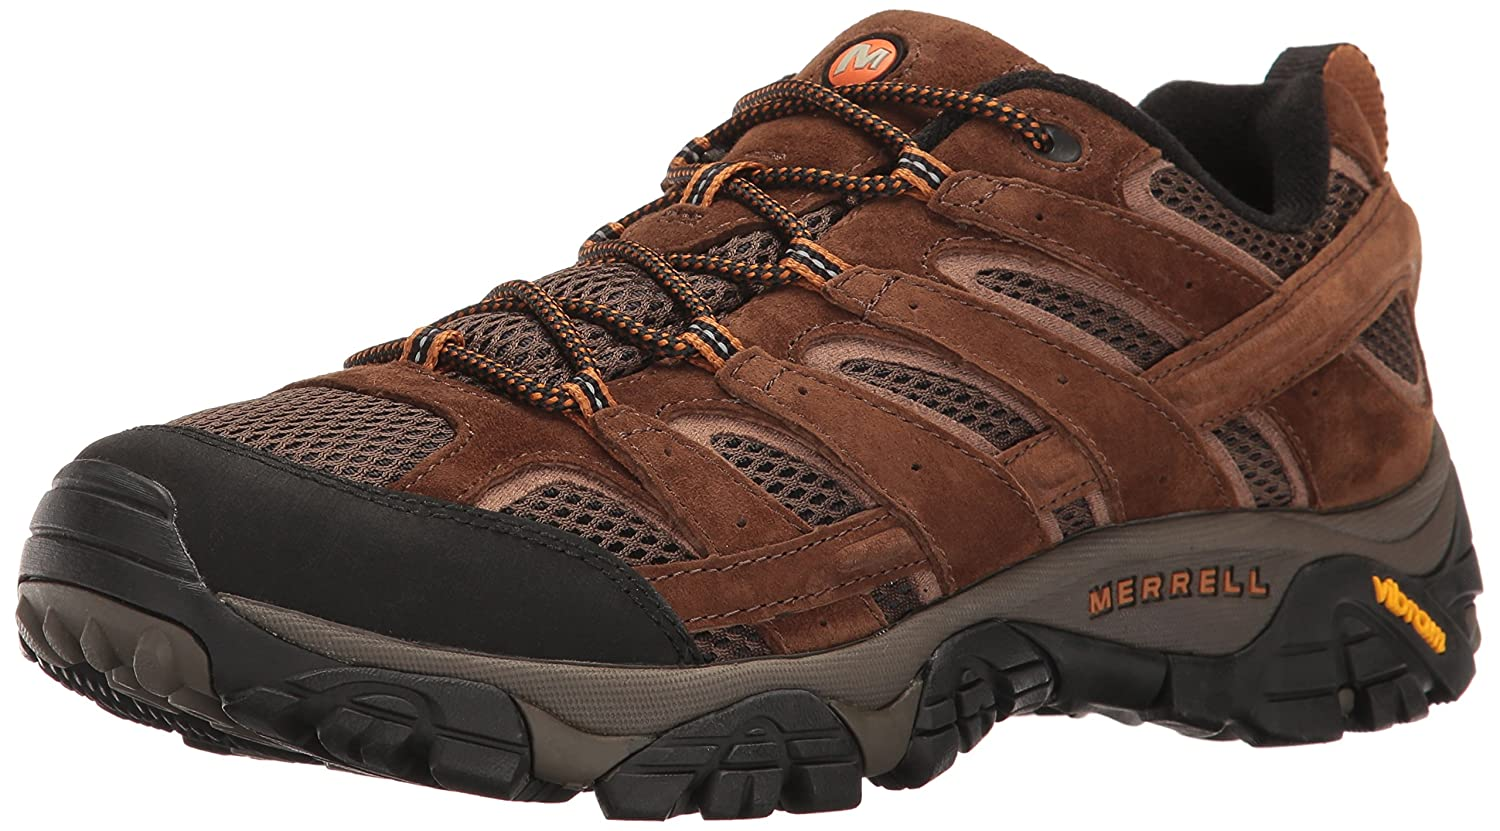 Merrell Men's Moab 2 Vent Hiking Shoe Merrell Footwear MOAB 2 VENT-M